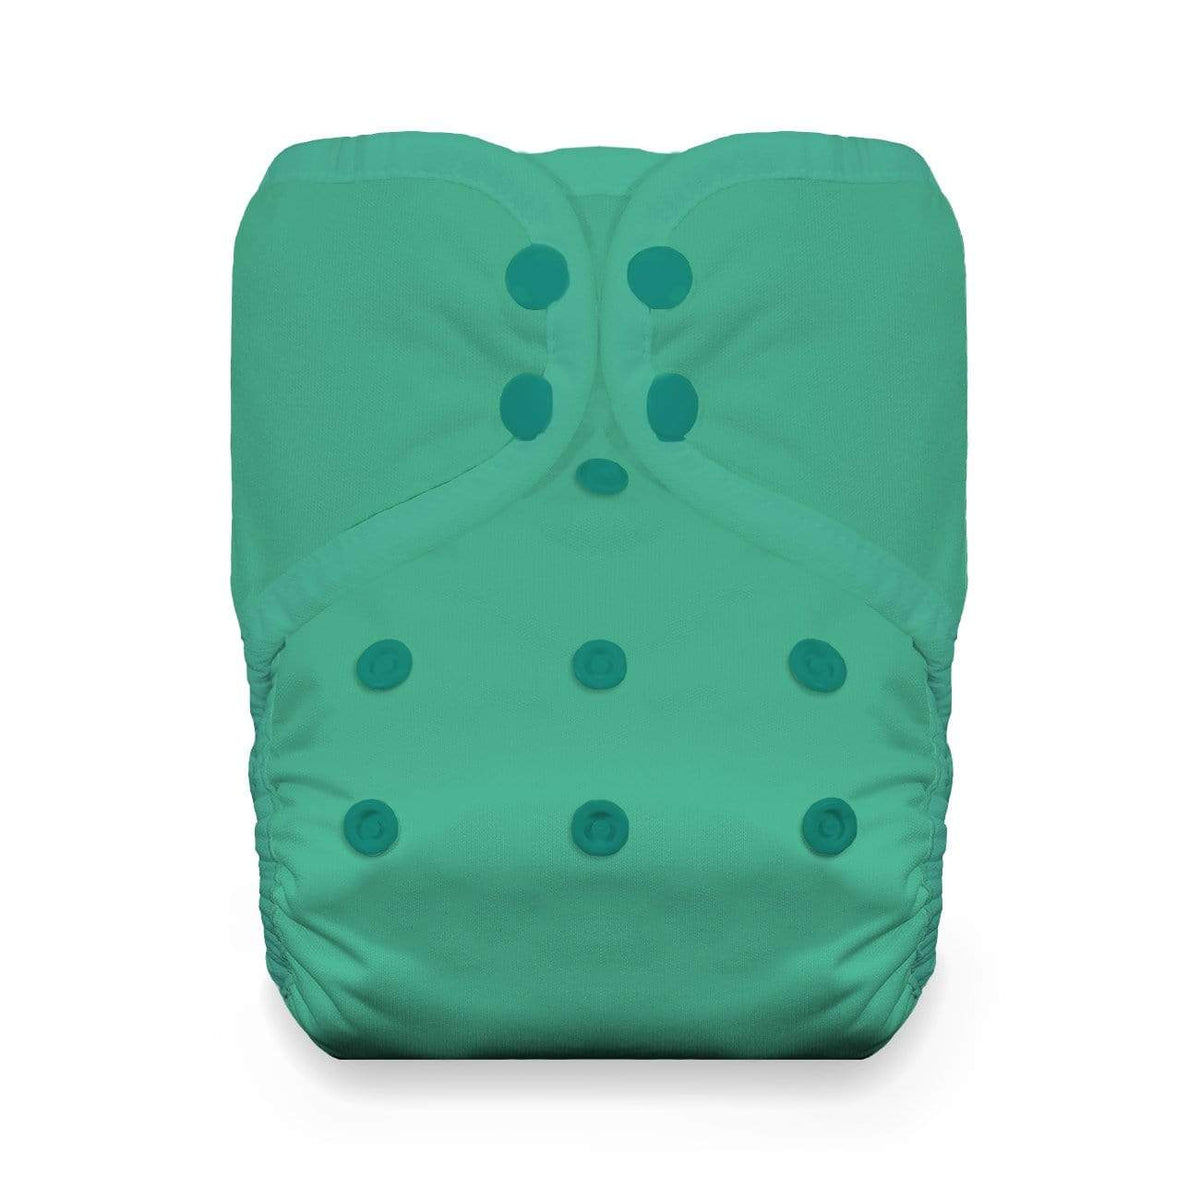 Thirsties One Size Snap Pocket Diaper - Seafoam